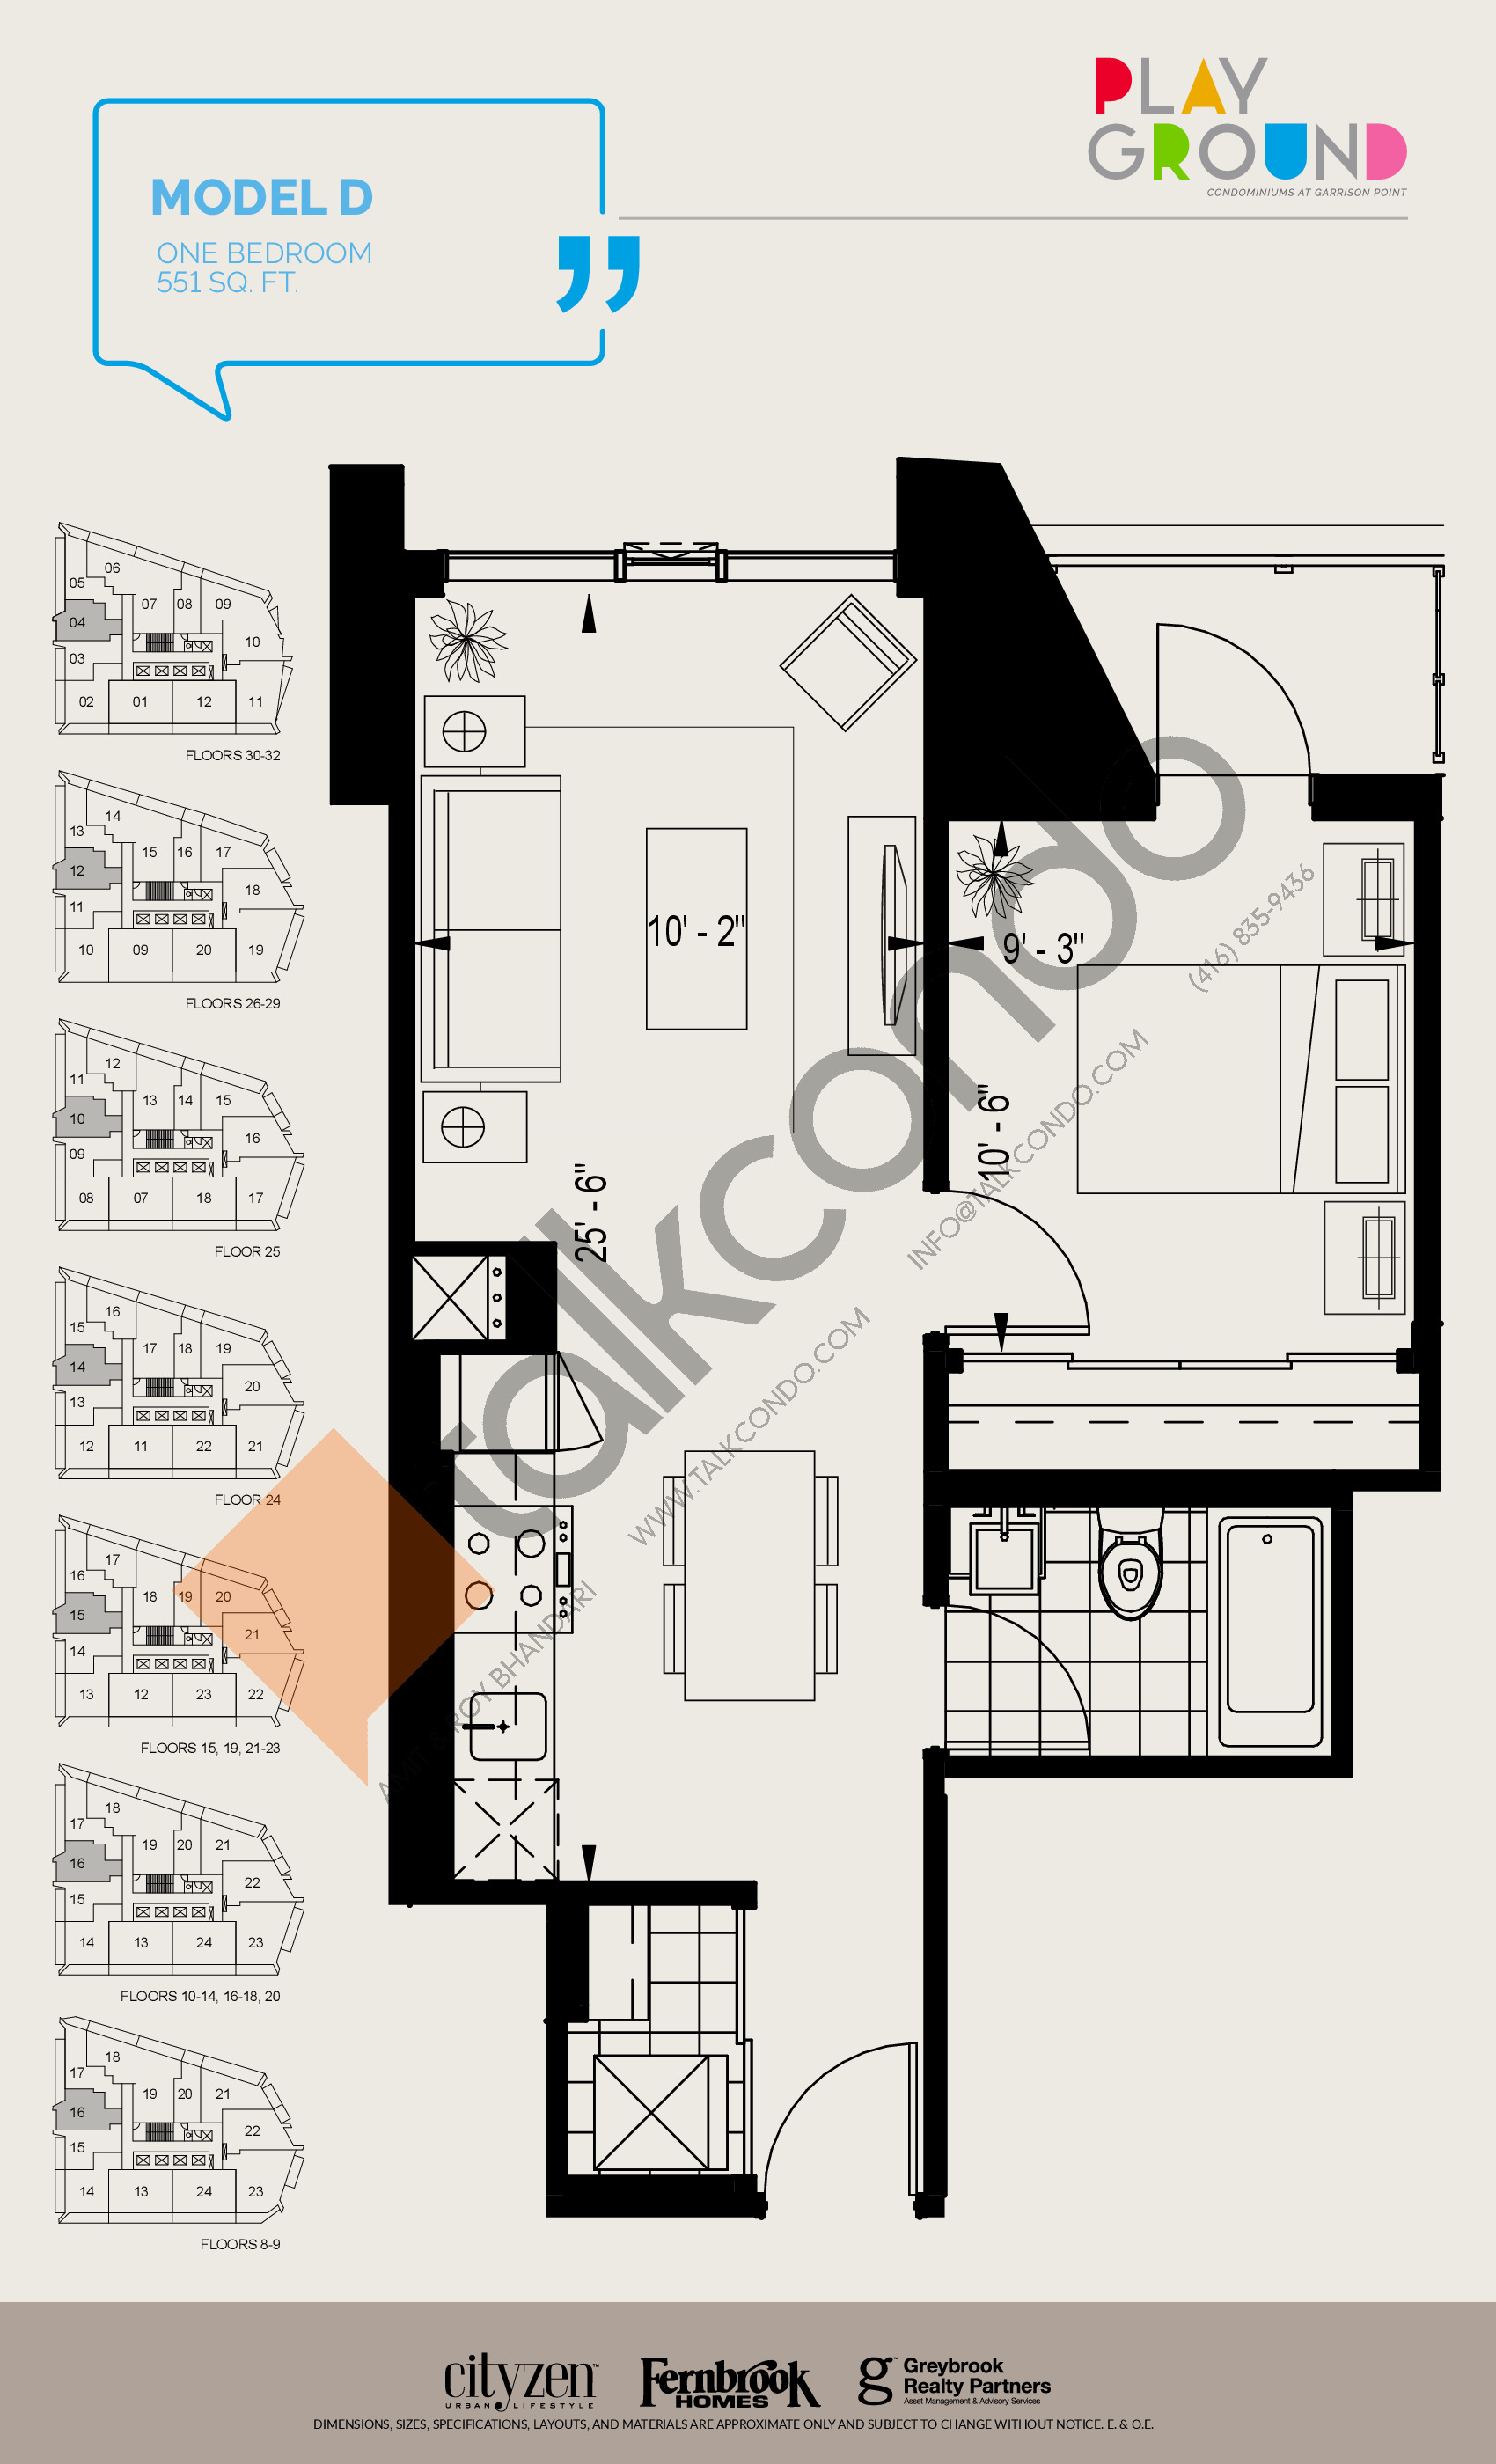 Model D Floor Plan at Playground Condos at Garrison Point - 551 sq.ft